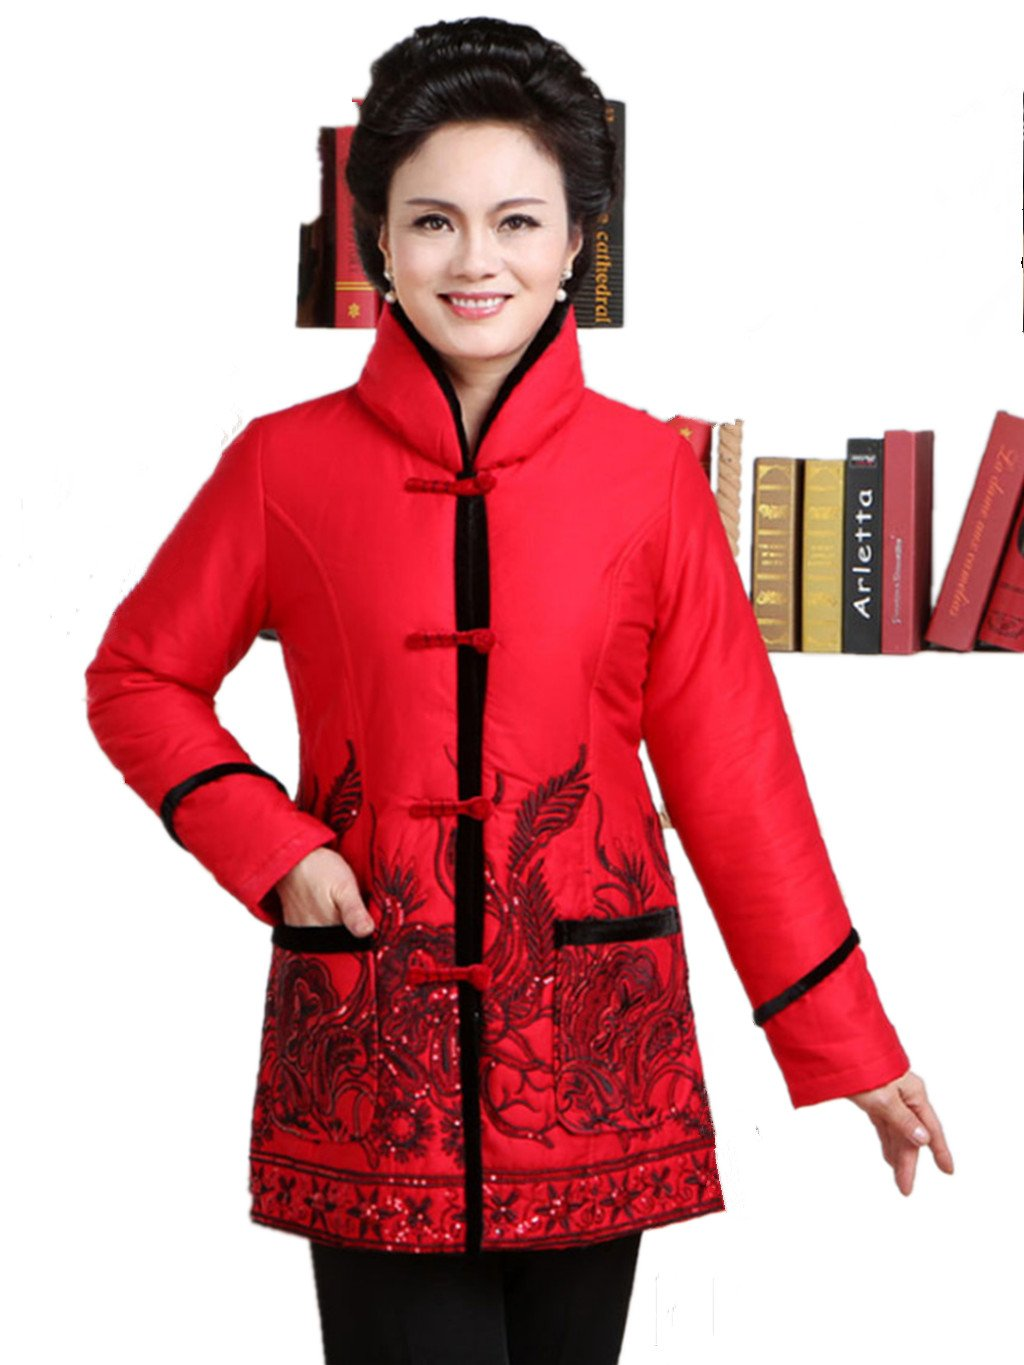 100% Cotton Womens Tang Suits Cotton-padded Jackets Jackets Business Jackets Cotton-padded Clothes by Womens Tang Suit (Image #1)